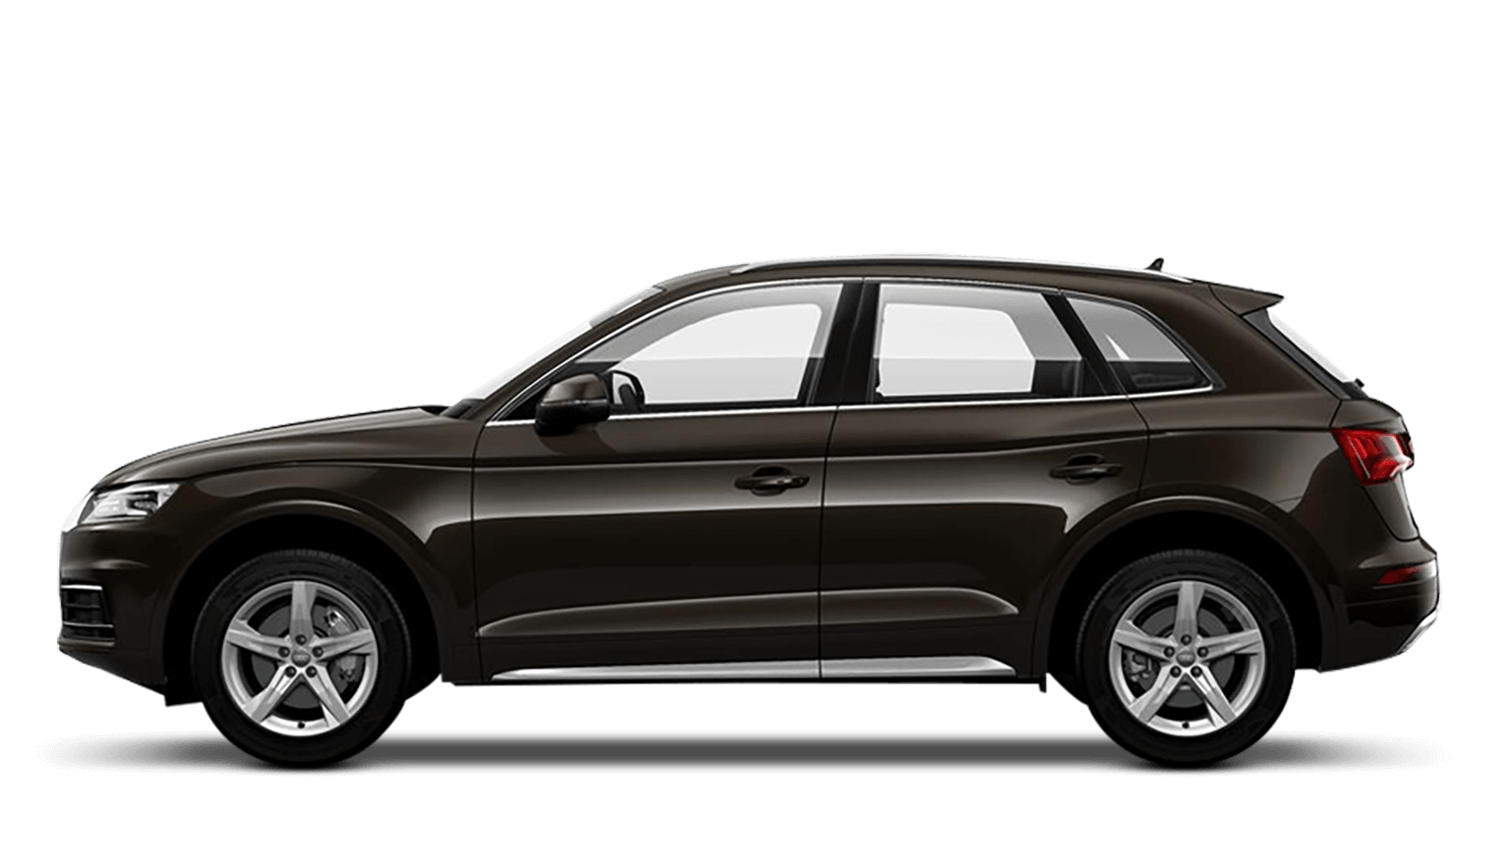 Java Brown (Metallic) Audi Q5